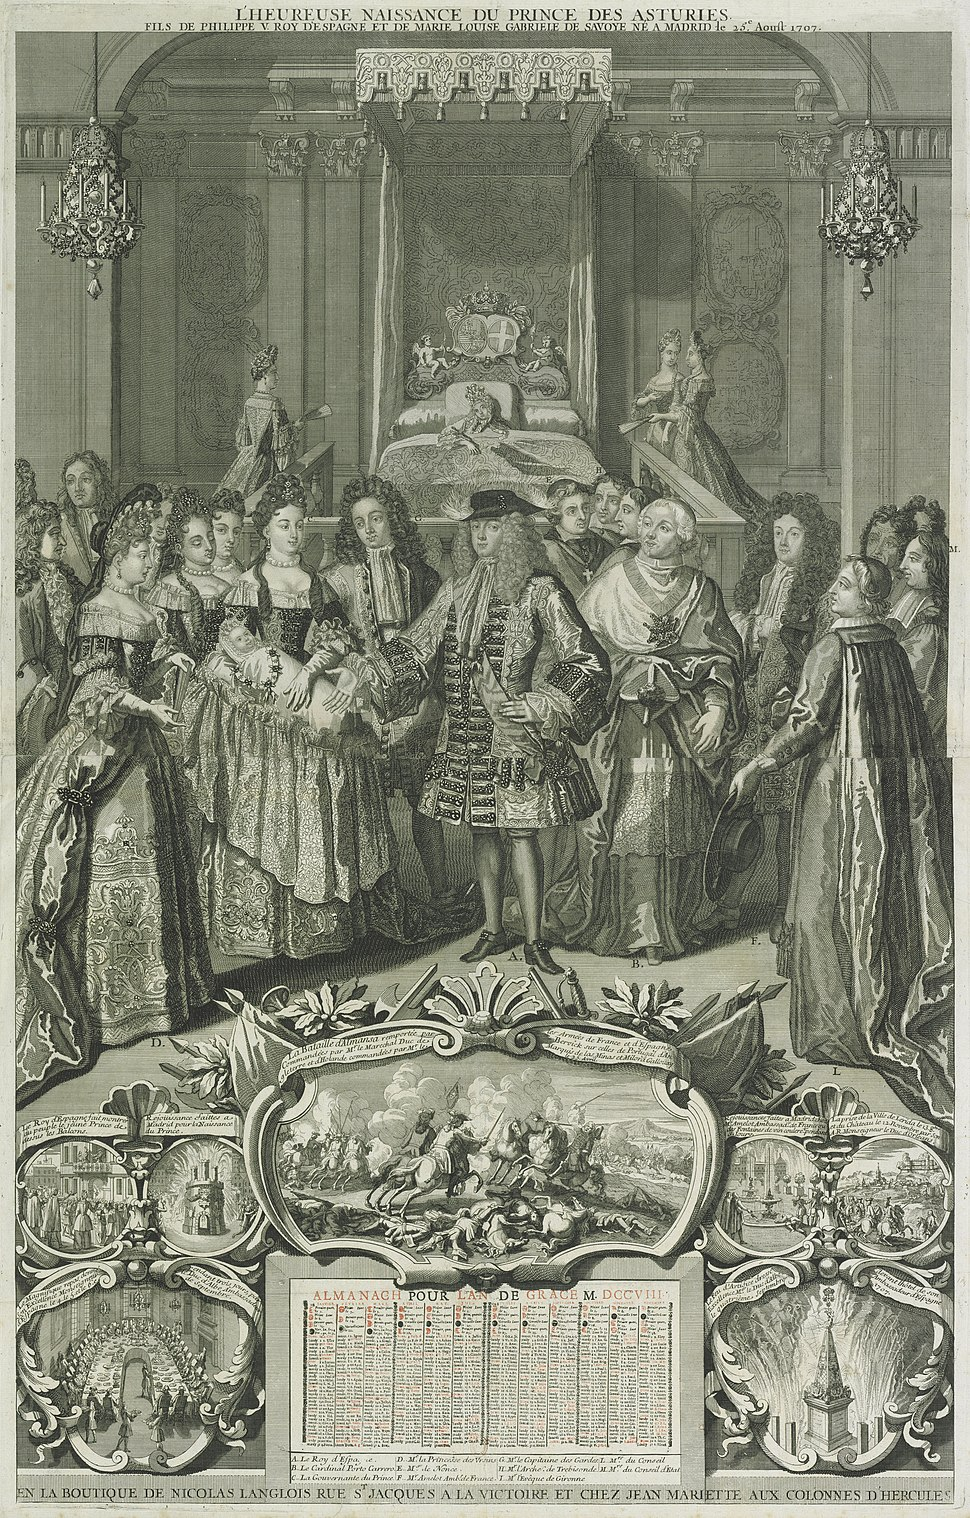 Birth of the Prince of Asturias